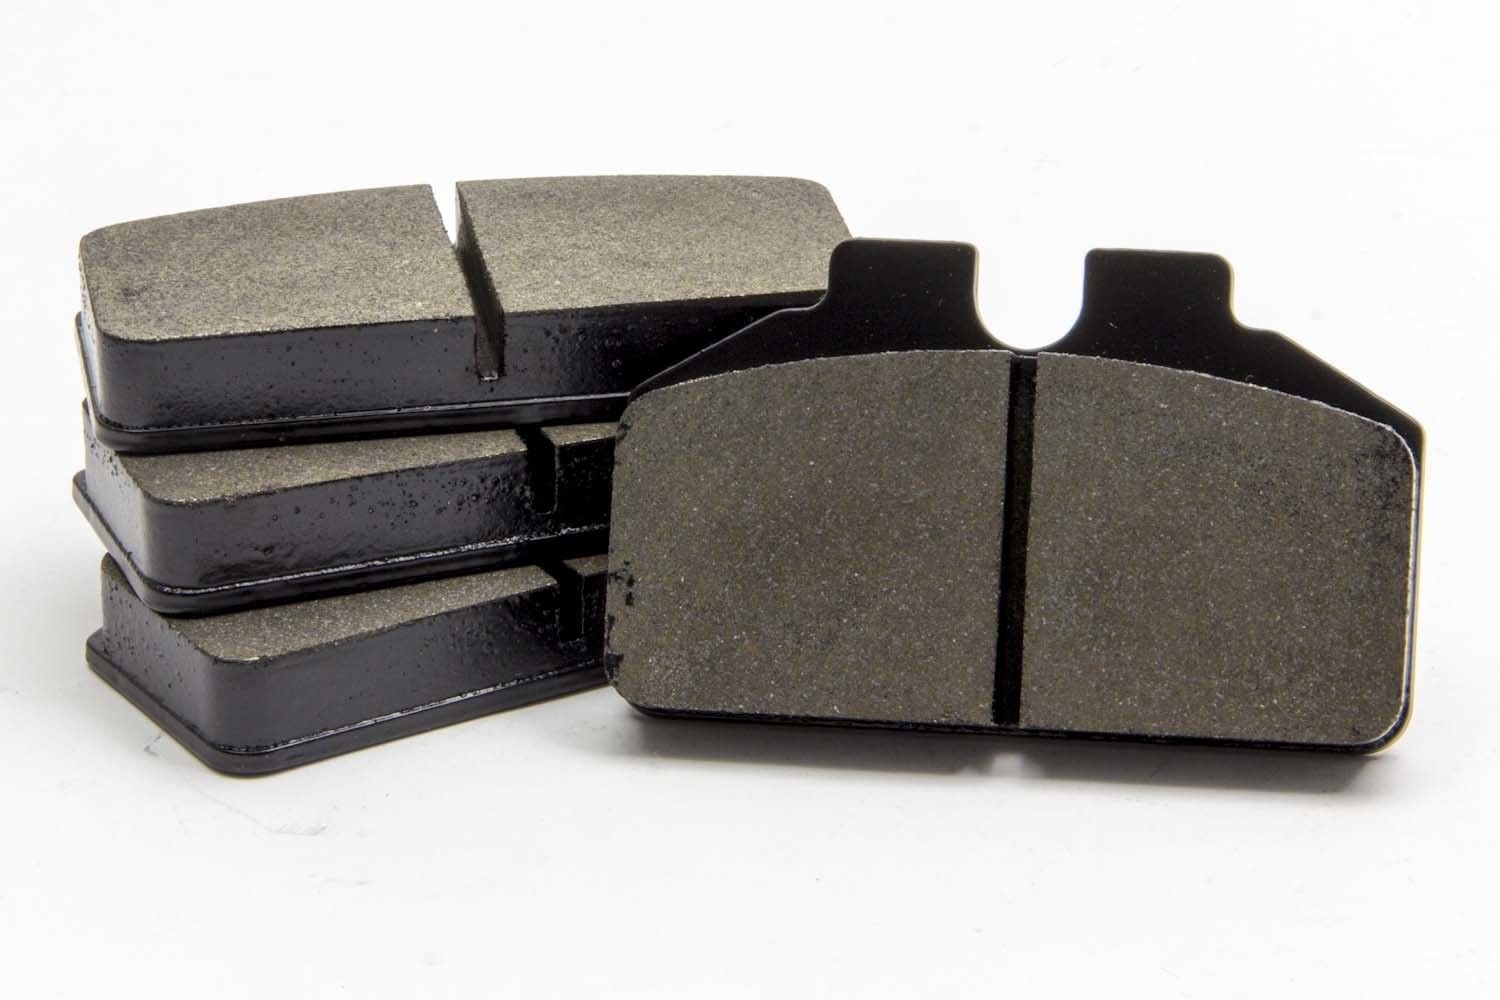 C1 Brake Pads Narrow D/L 2800 F22i AFCO RACING PRODUCTS 1251-1002